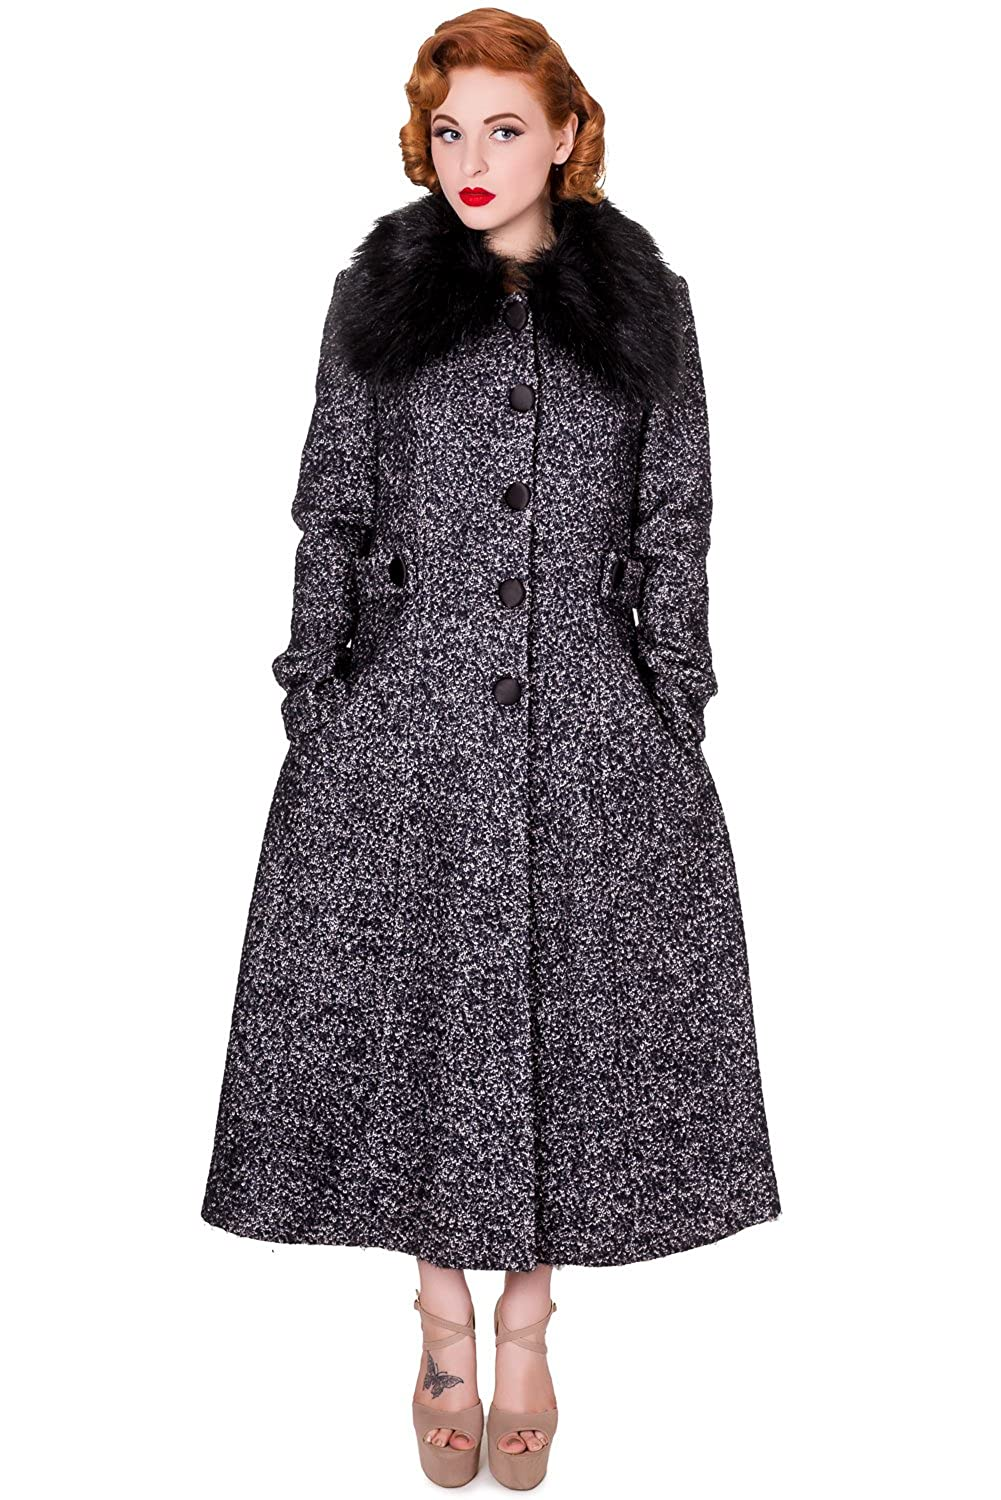 1930s Style Coats Banned Grey Simple Game Faux Fur Vintage 1940s 50s Winter Coat PLUS Sizes UK 18-22 £89.99 AT vintagedancer.com